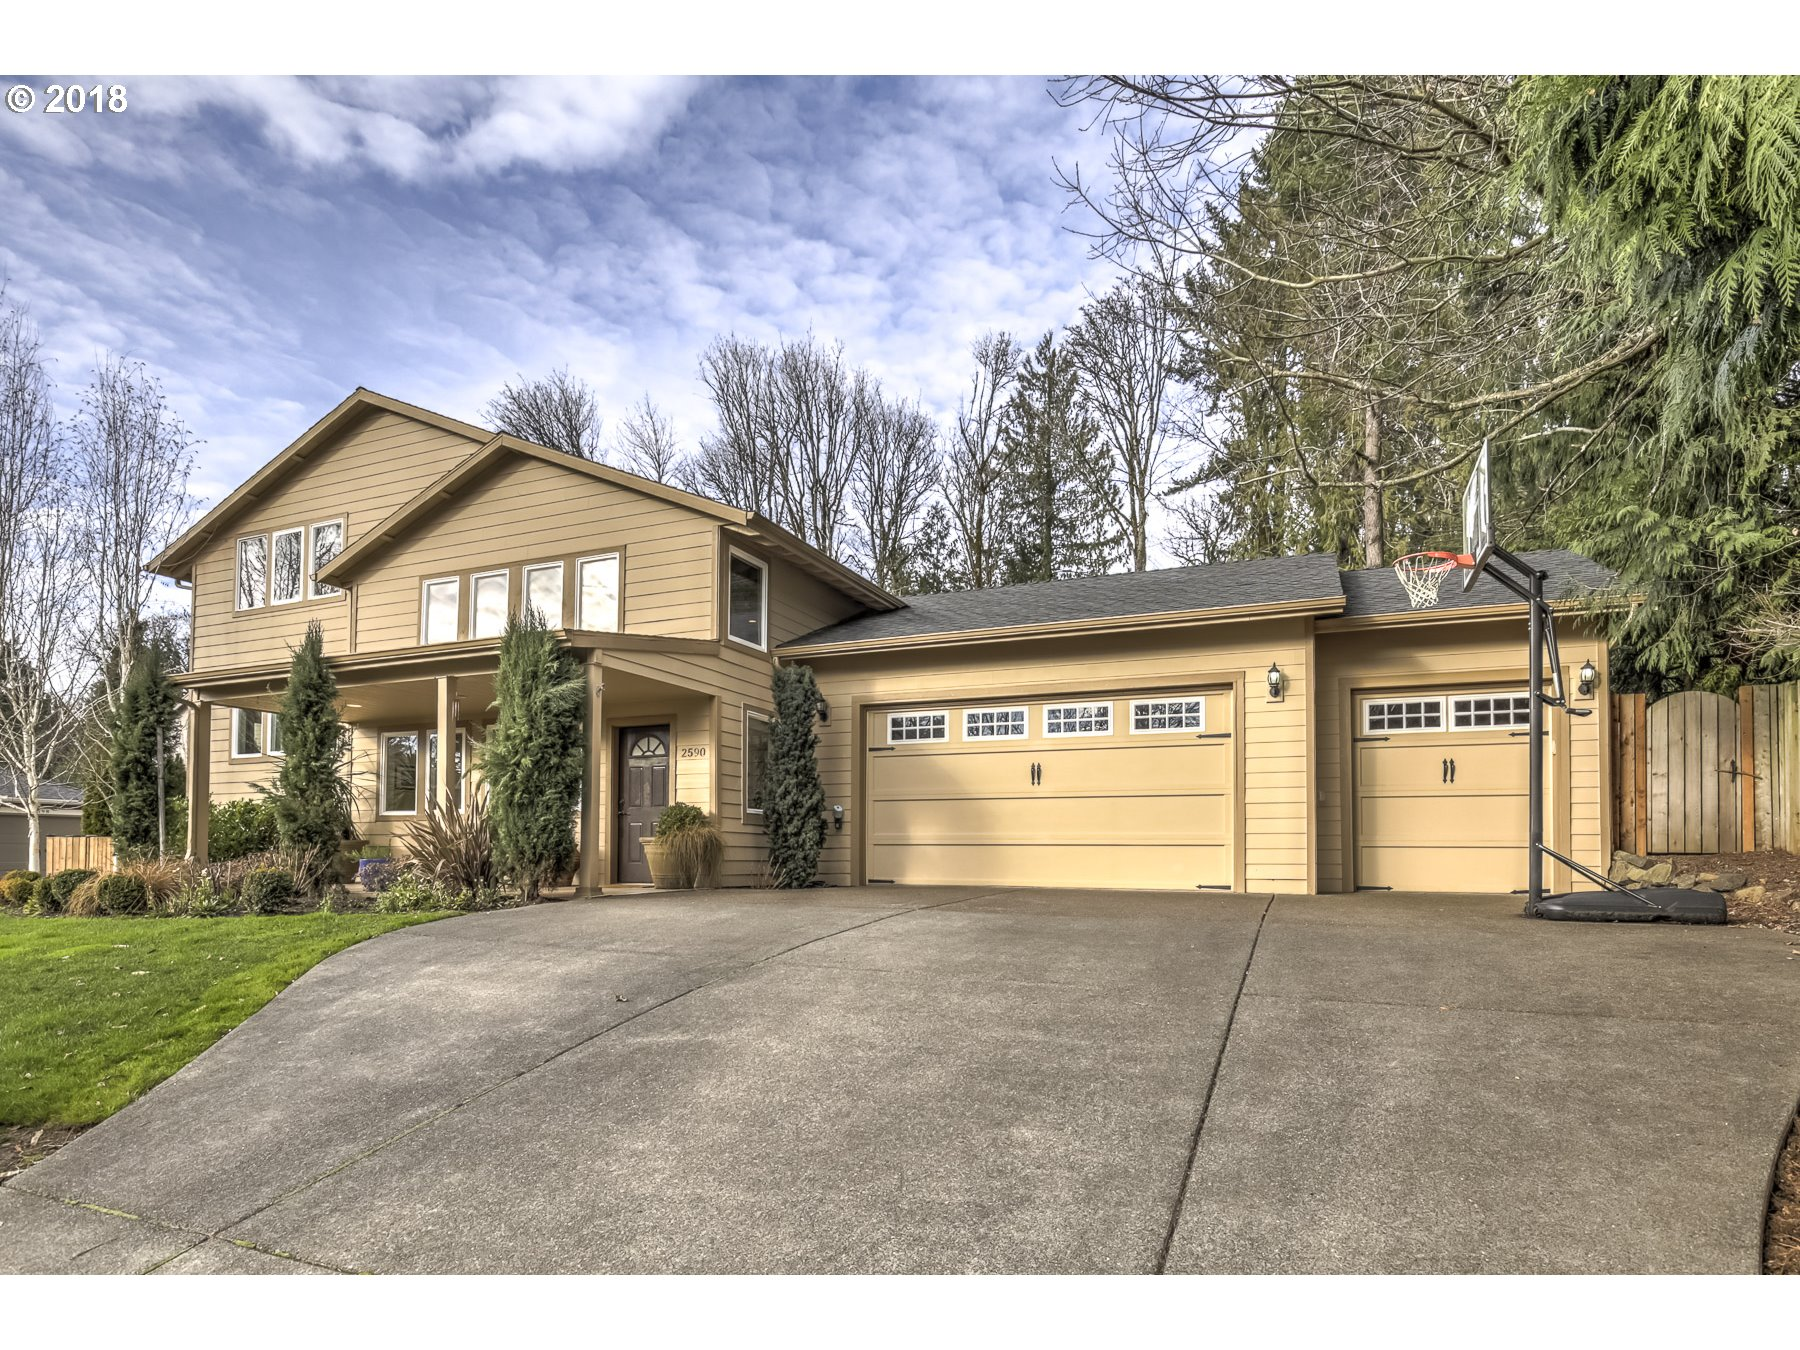 2590 DEBOK CT, West Linn, OR 97068